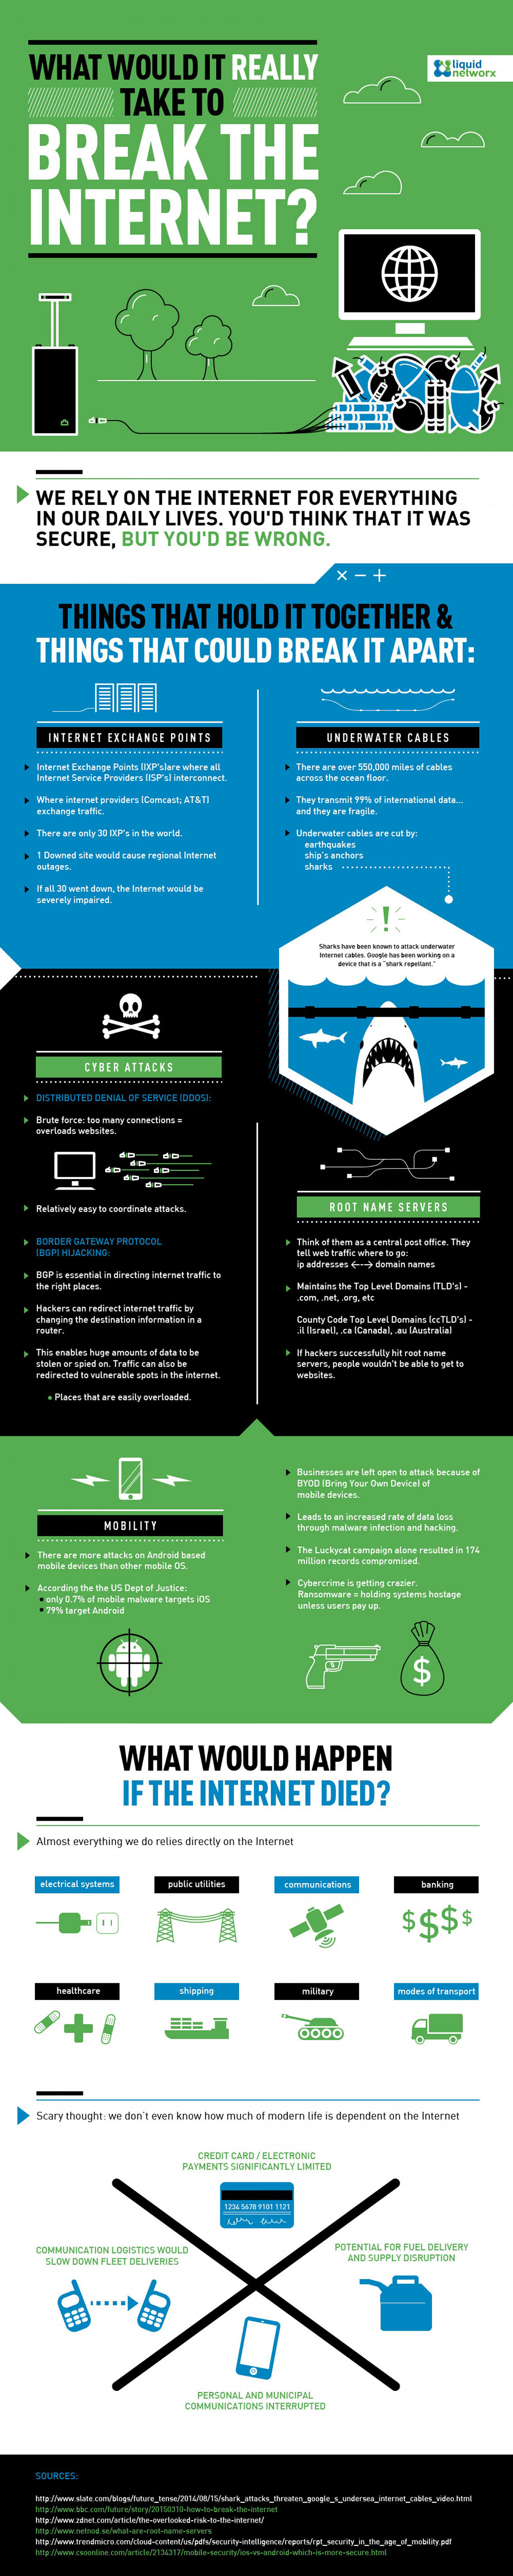 What It would take to Break the Internet Infographic